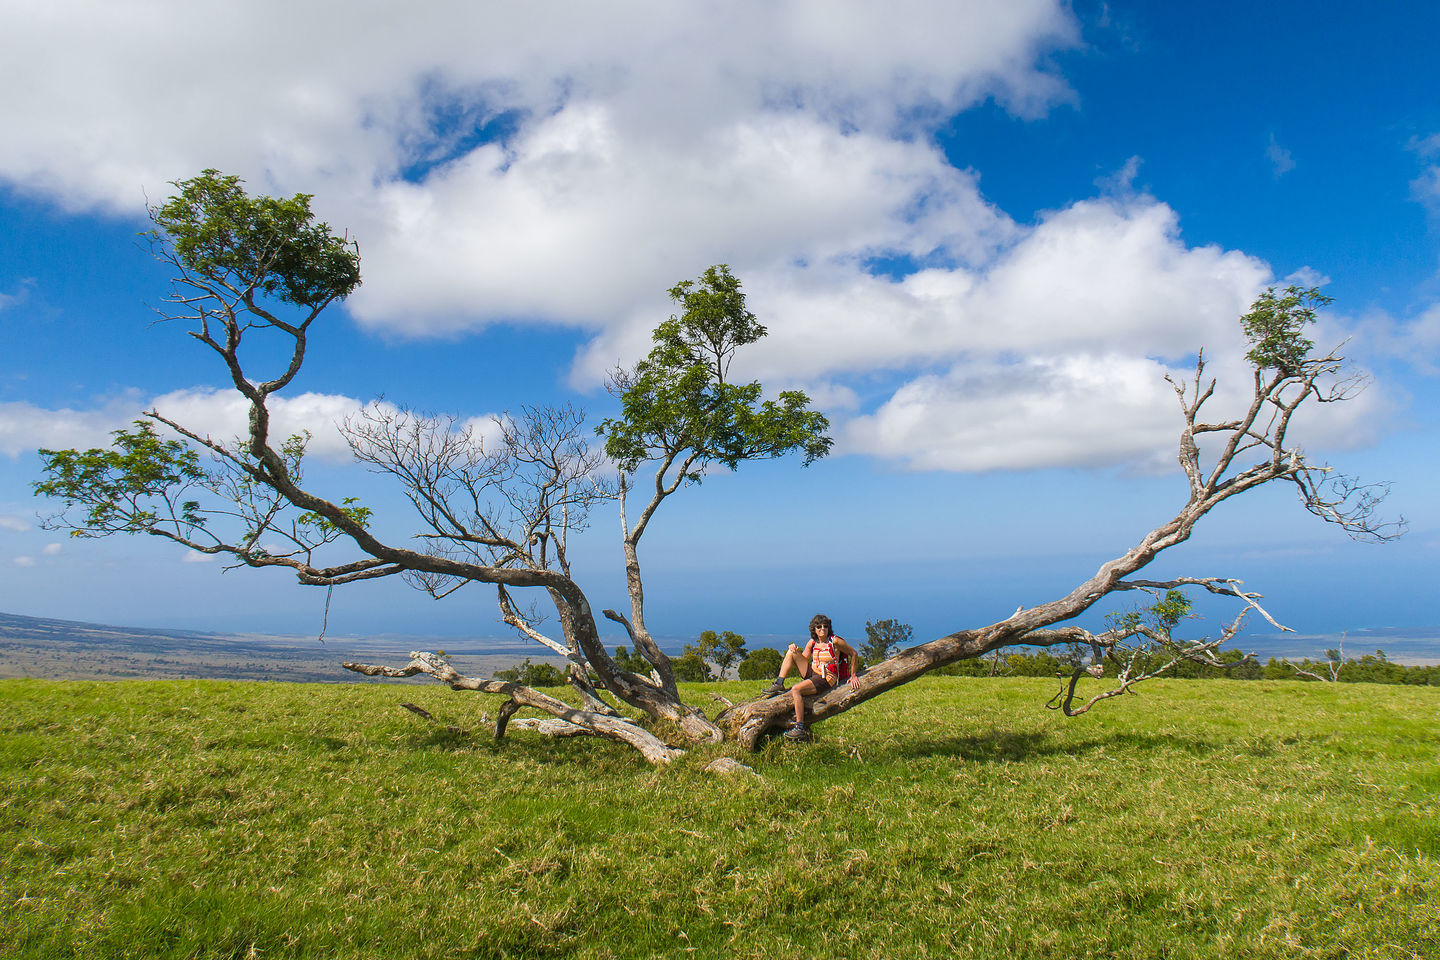 Interesting tree on Pu'u Wa'awa'a summit